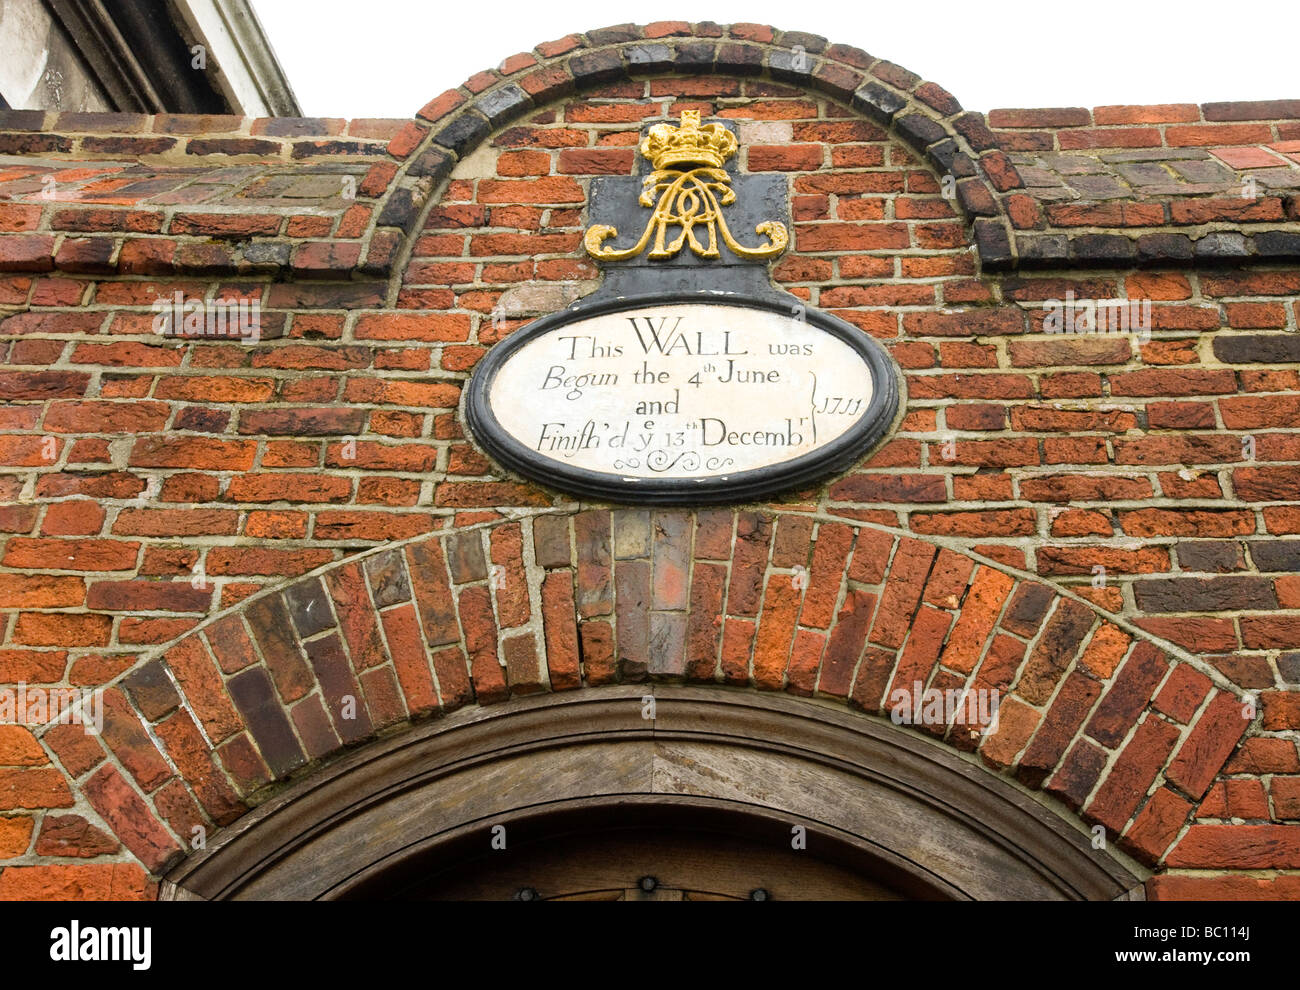 Sign on the wall near the entrance to Portsmouth Historic Dockyard, Portsmouth Harbour, Portsmouth, England, UK - Stock Image